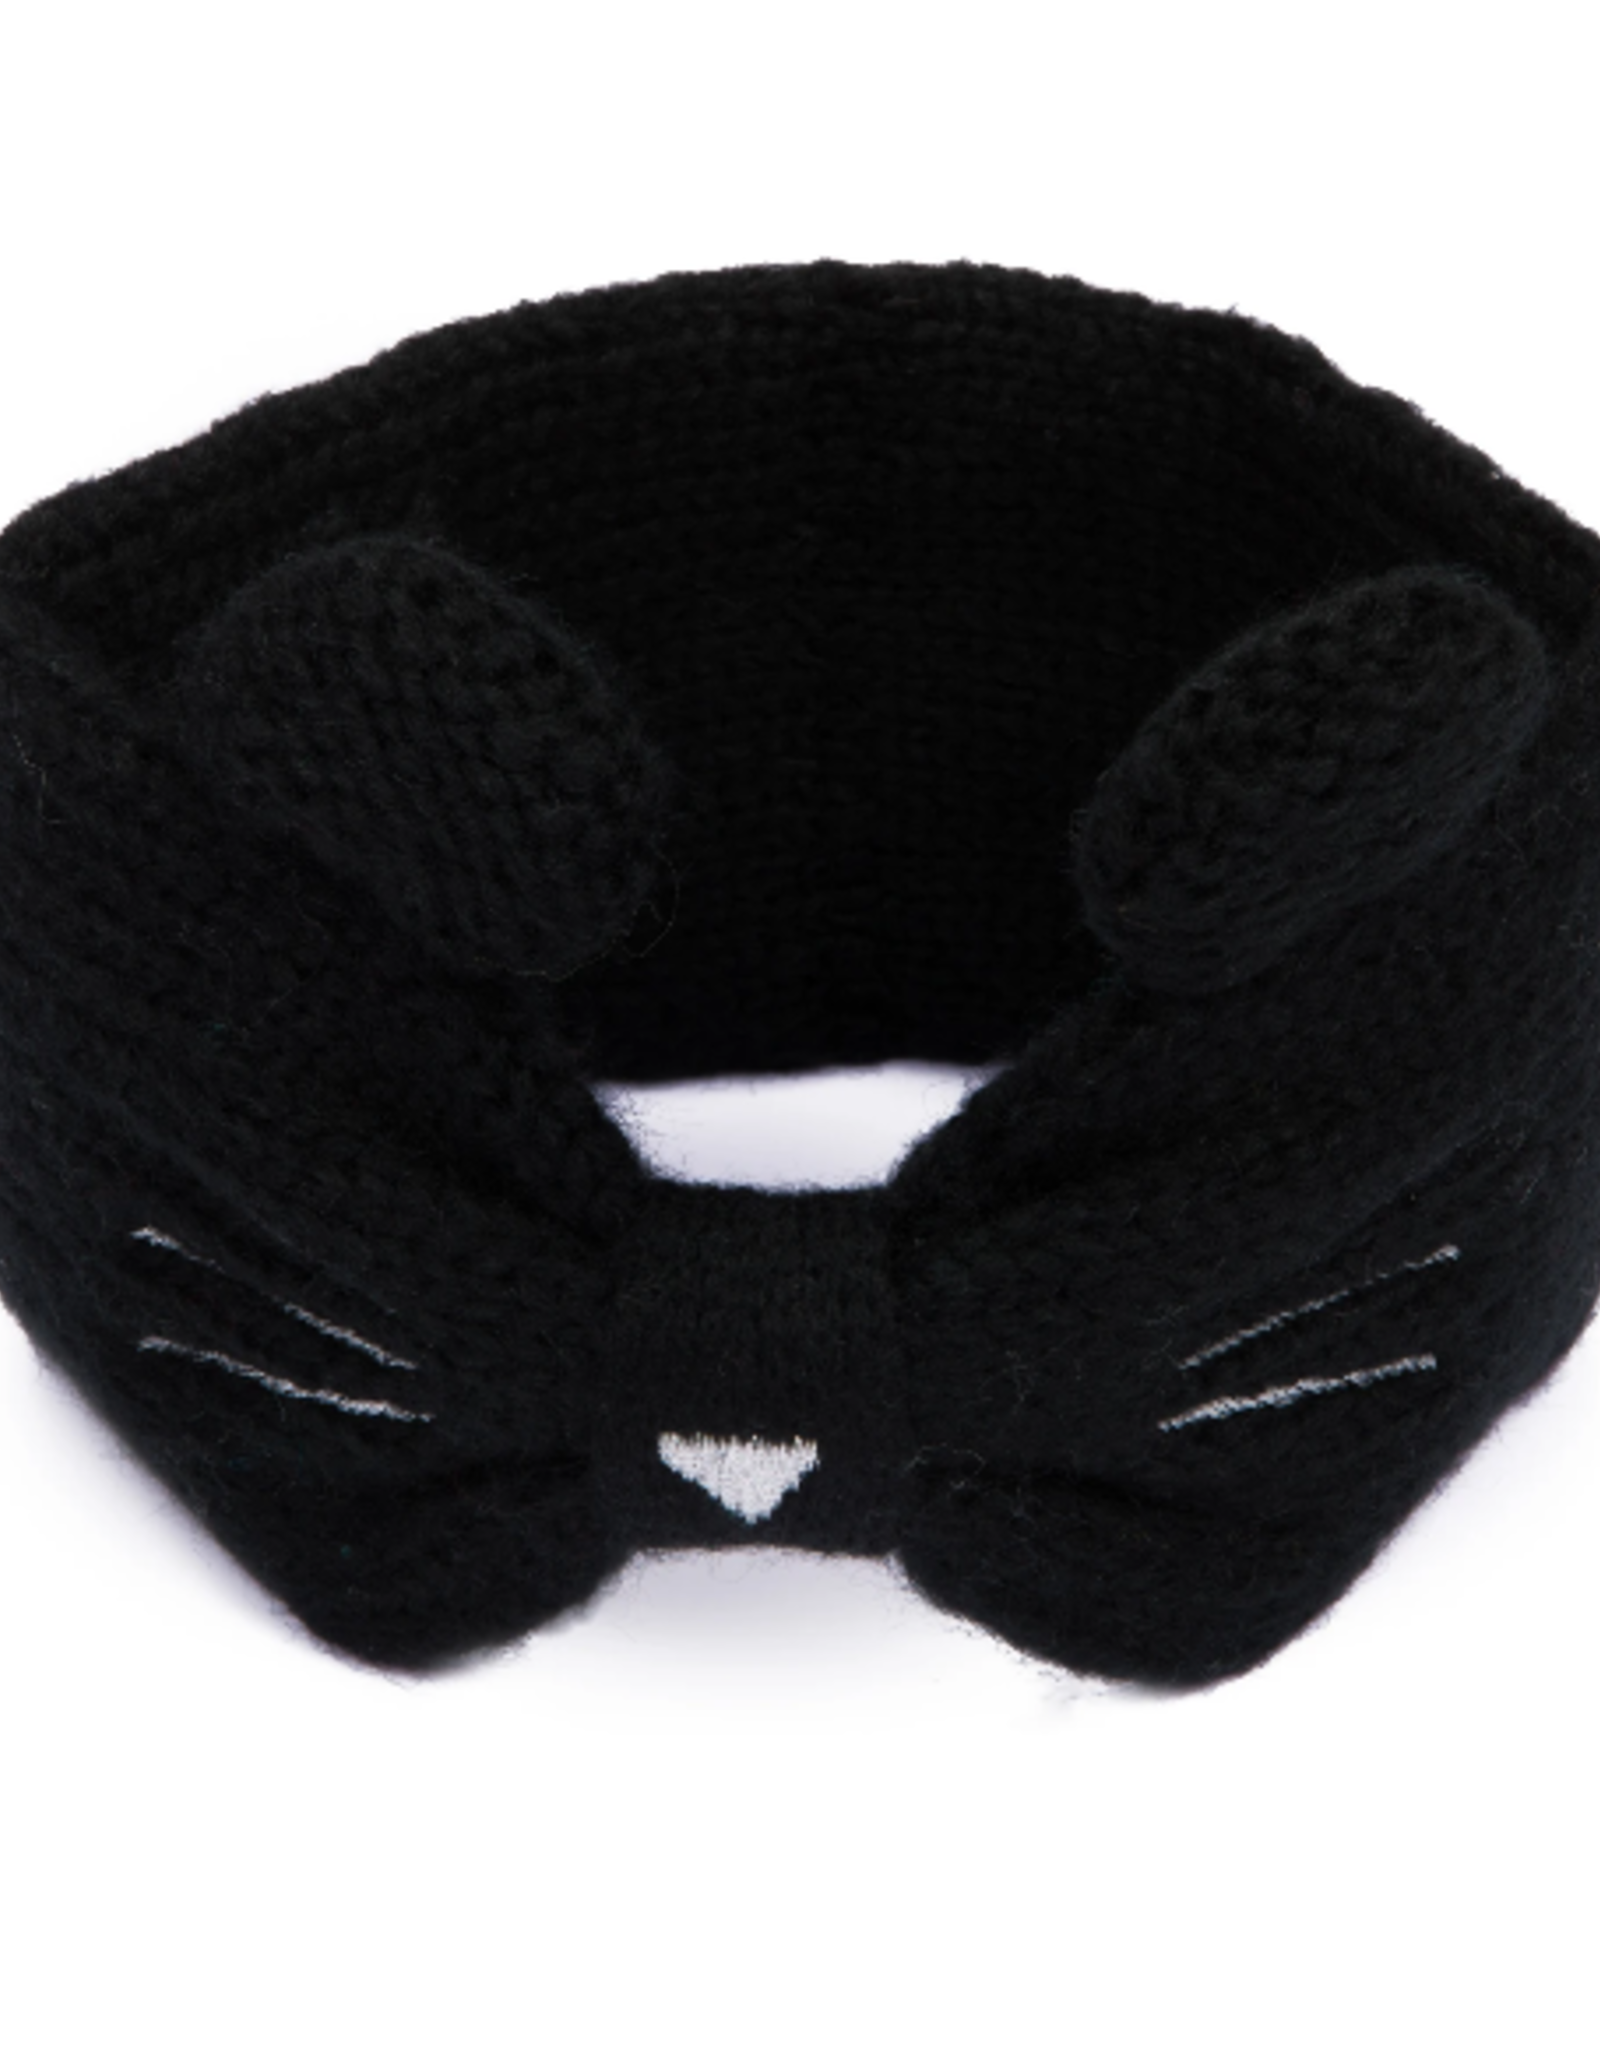 HEADBAND BLACK KNIT ACRYLIC CAT EARS (SUITABLE FOR CHILDREN 5-7 YEARS)